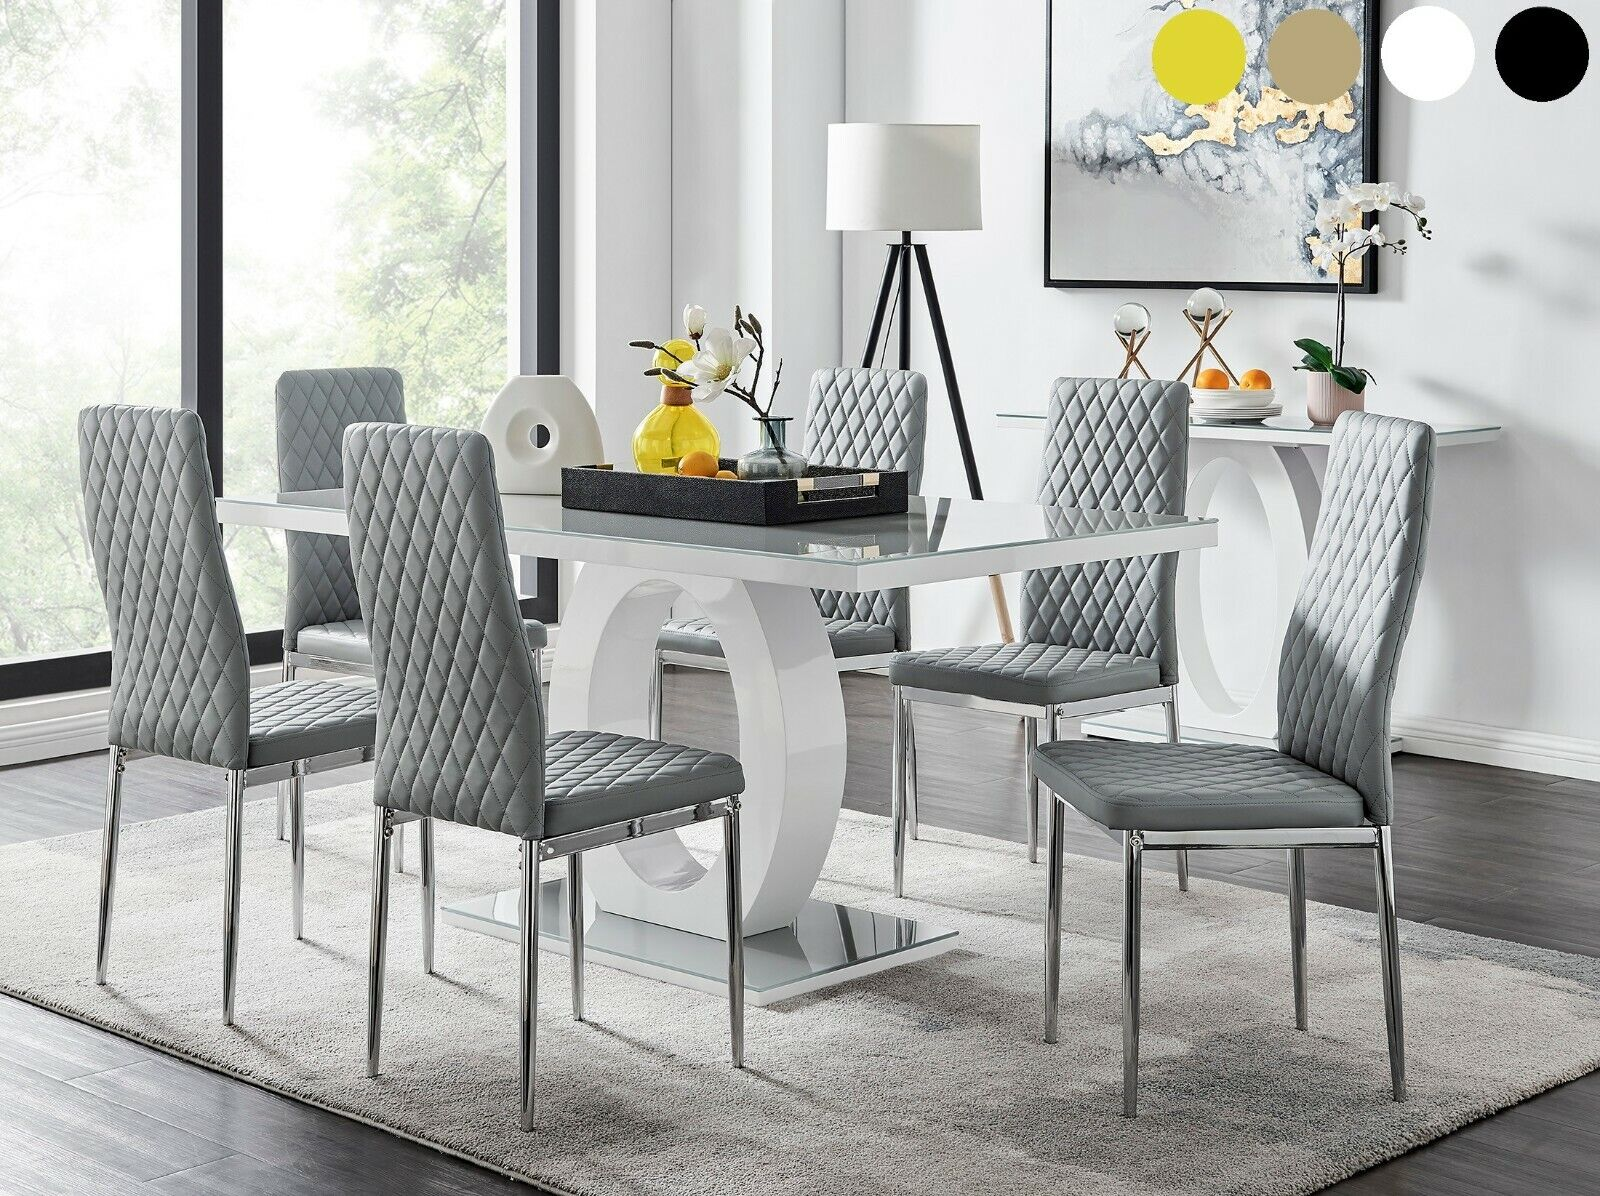 Picture of: Massive 10 Seater Dining Set 2 2mt White Glass Top Table 10 Grey Chairs For Sale Ebay